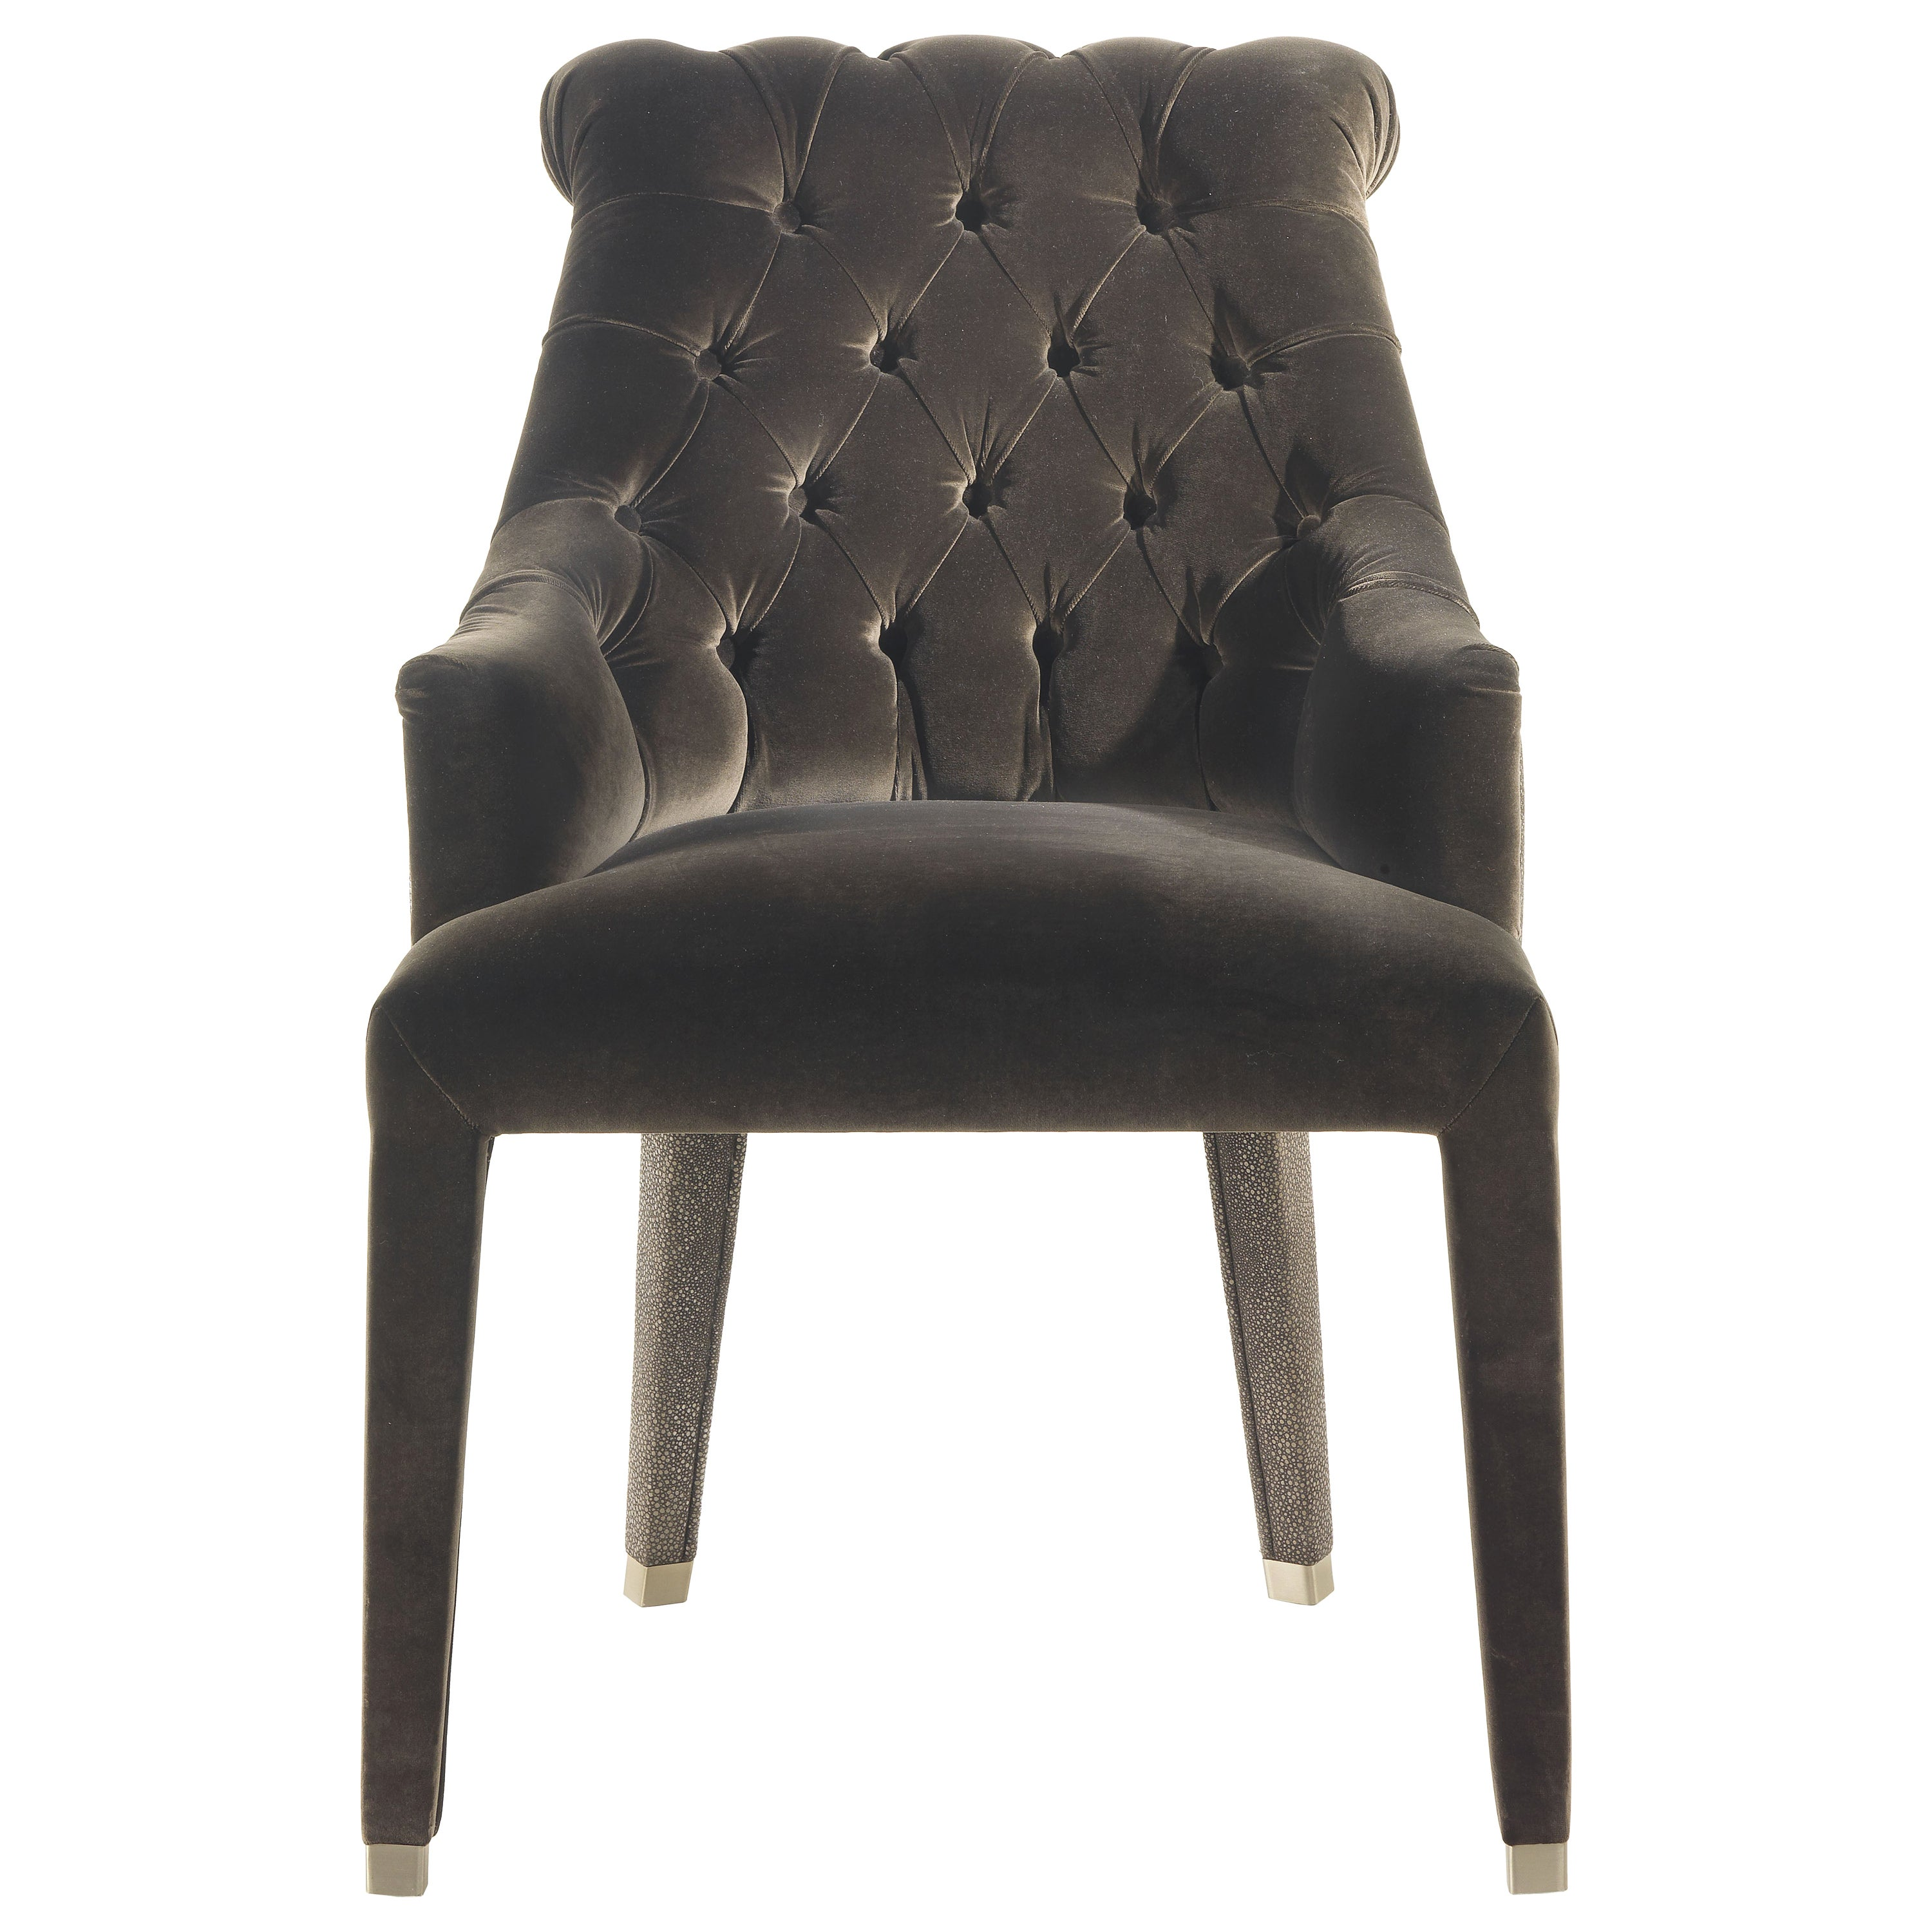 Lady E Armchair in Fabric and Leather by Roberto Cavalli Home Interiors